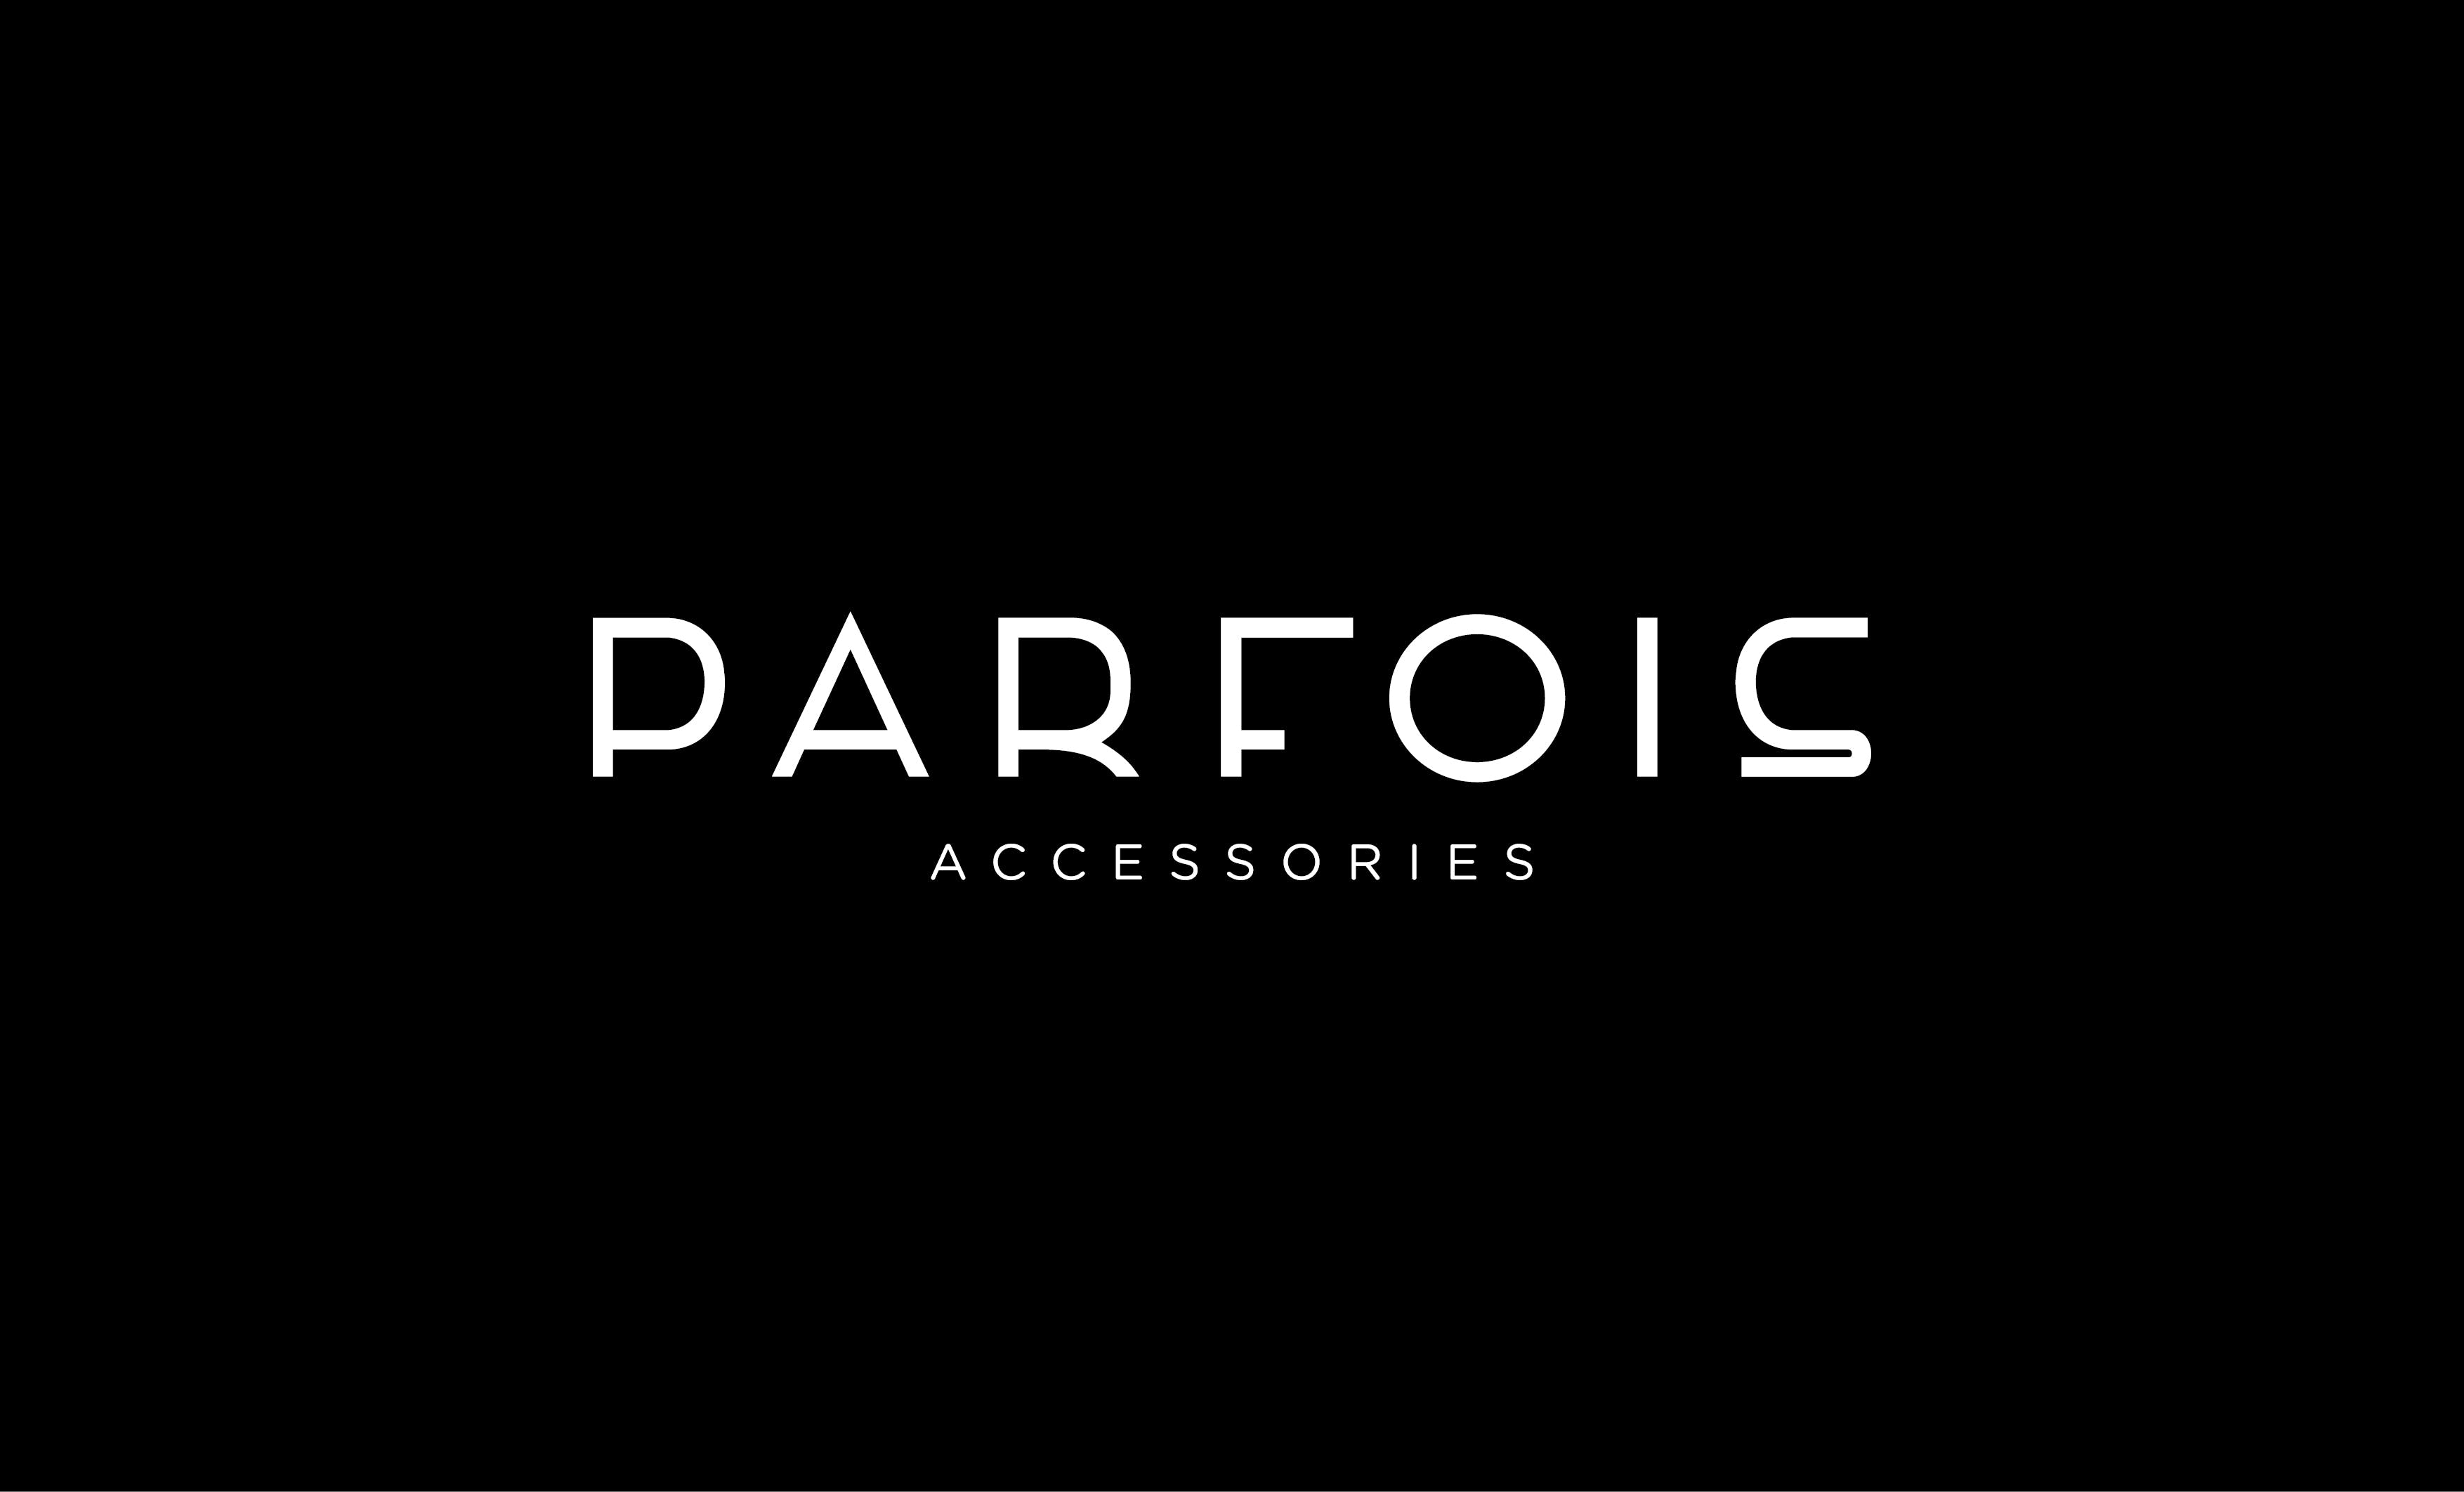 logo Parfois + accessories_black background